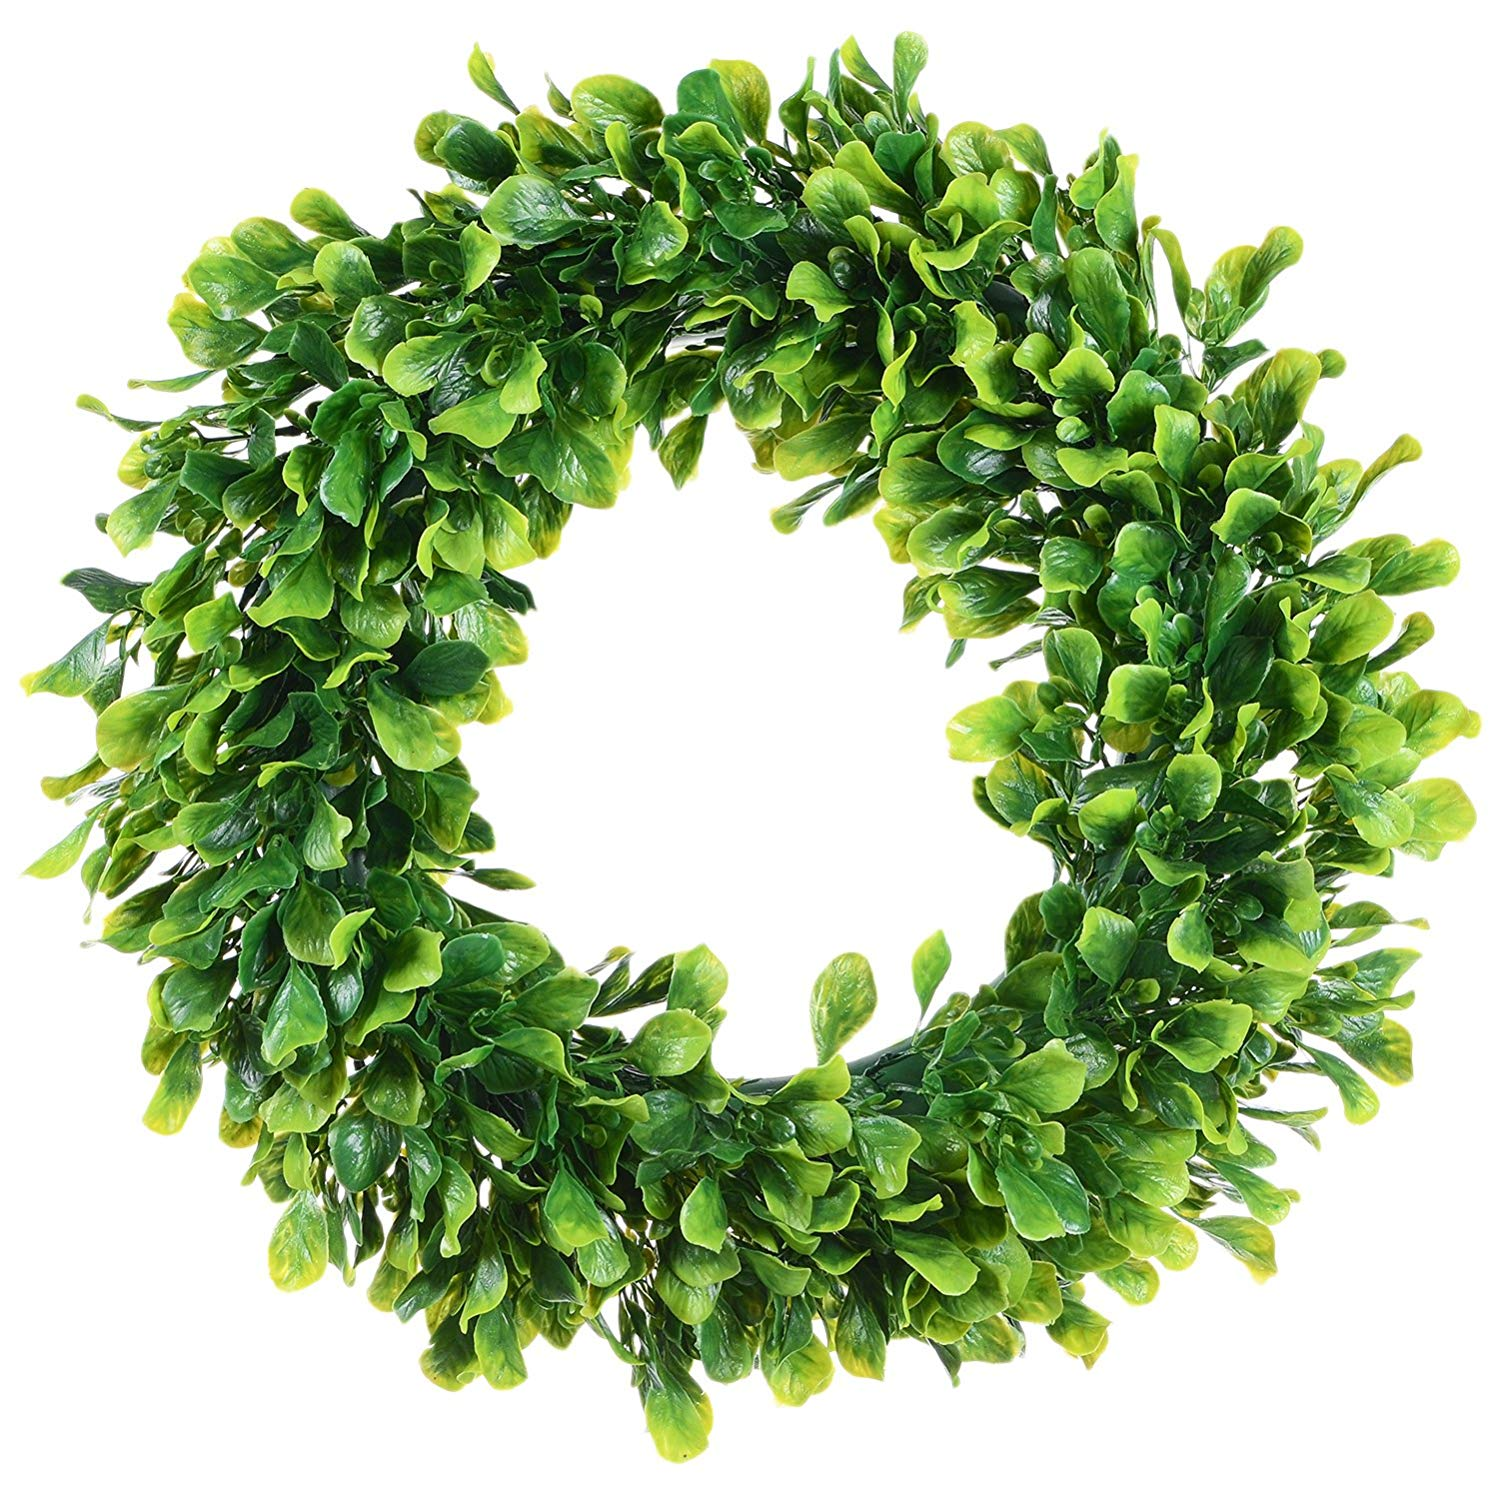 Coolmade Artificial Green Leaves Wreath 15 Boxwood Wreath Outdoor